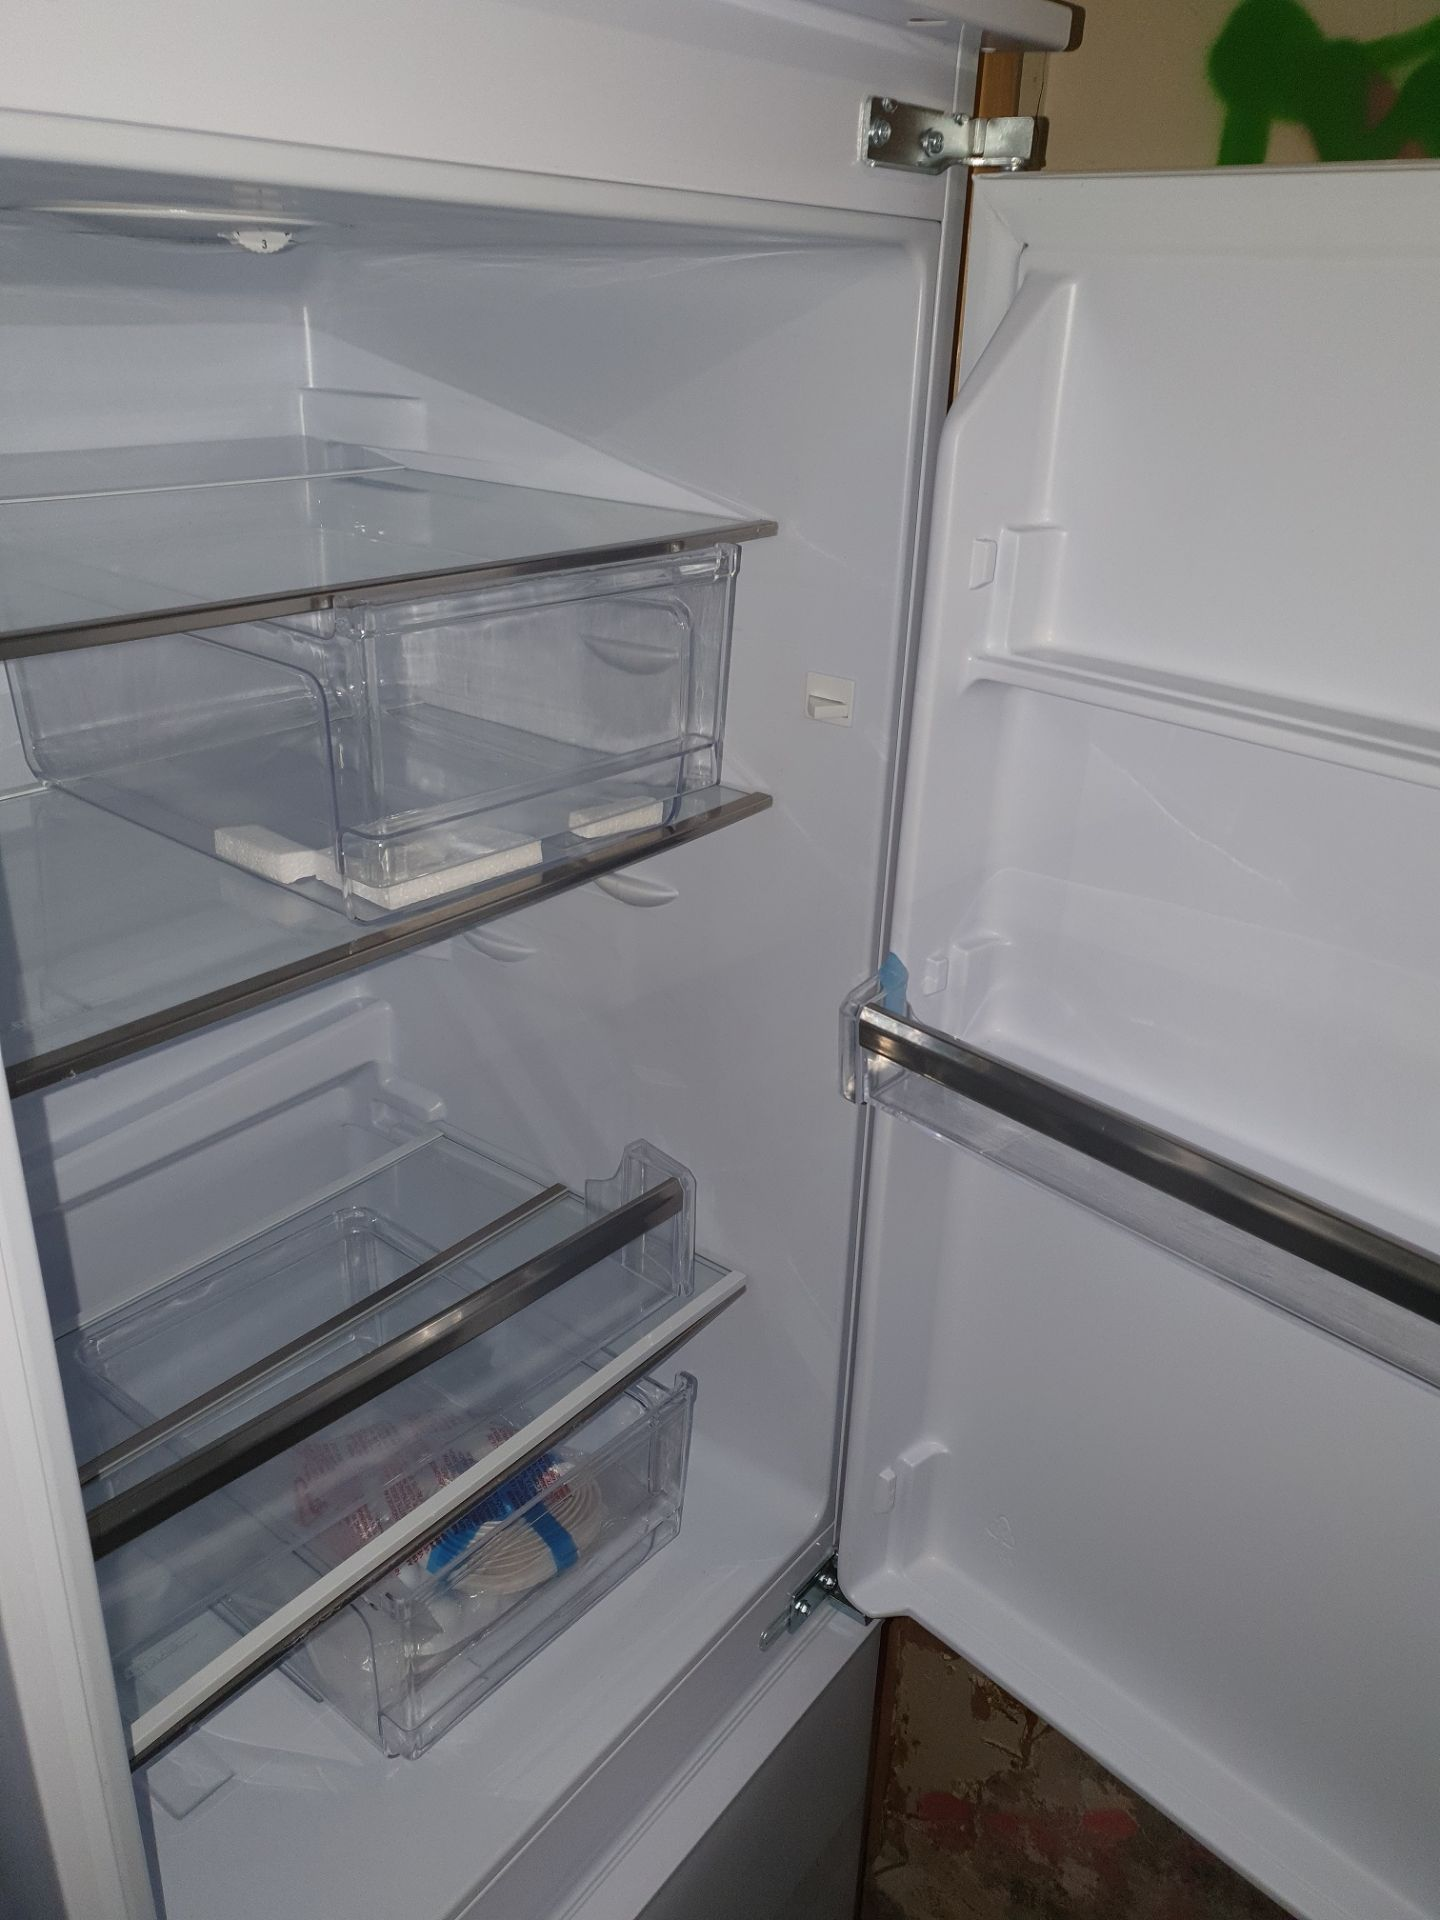 NEW/GRADED AND UNPACKAGED Whirlpool, ART6550/A+SF.1, Integrated Fridge Freezer (Brand new slight - Image 13 of 14